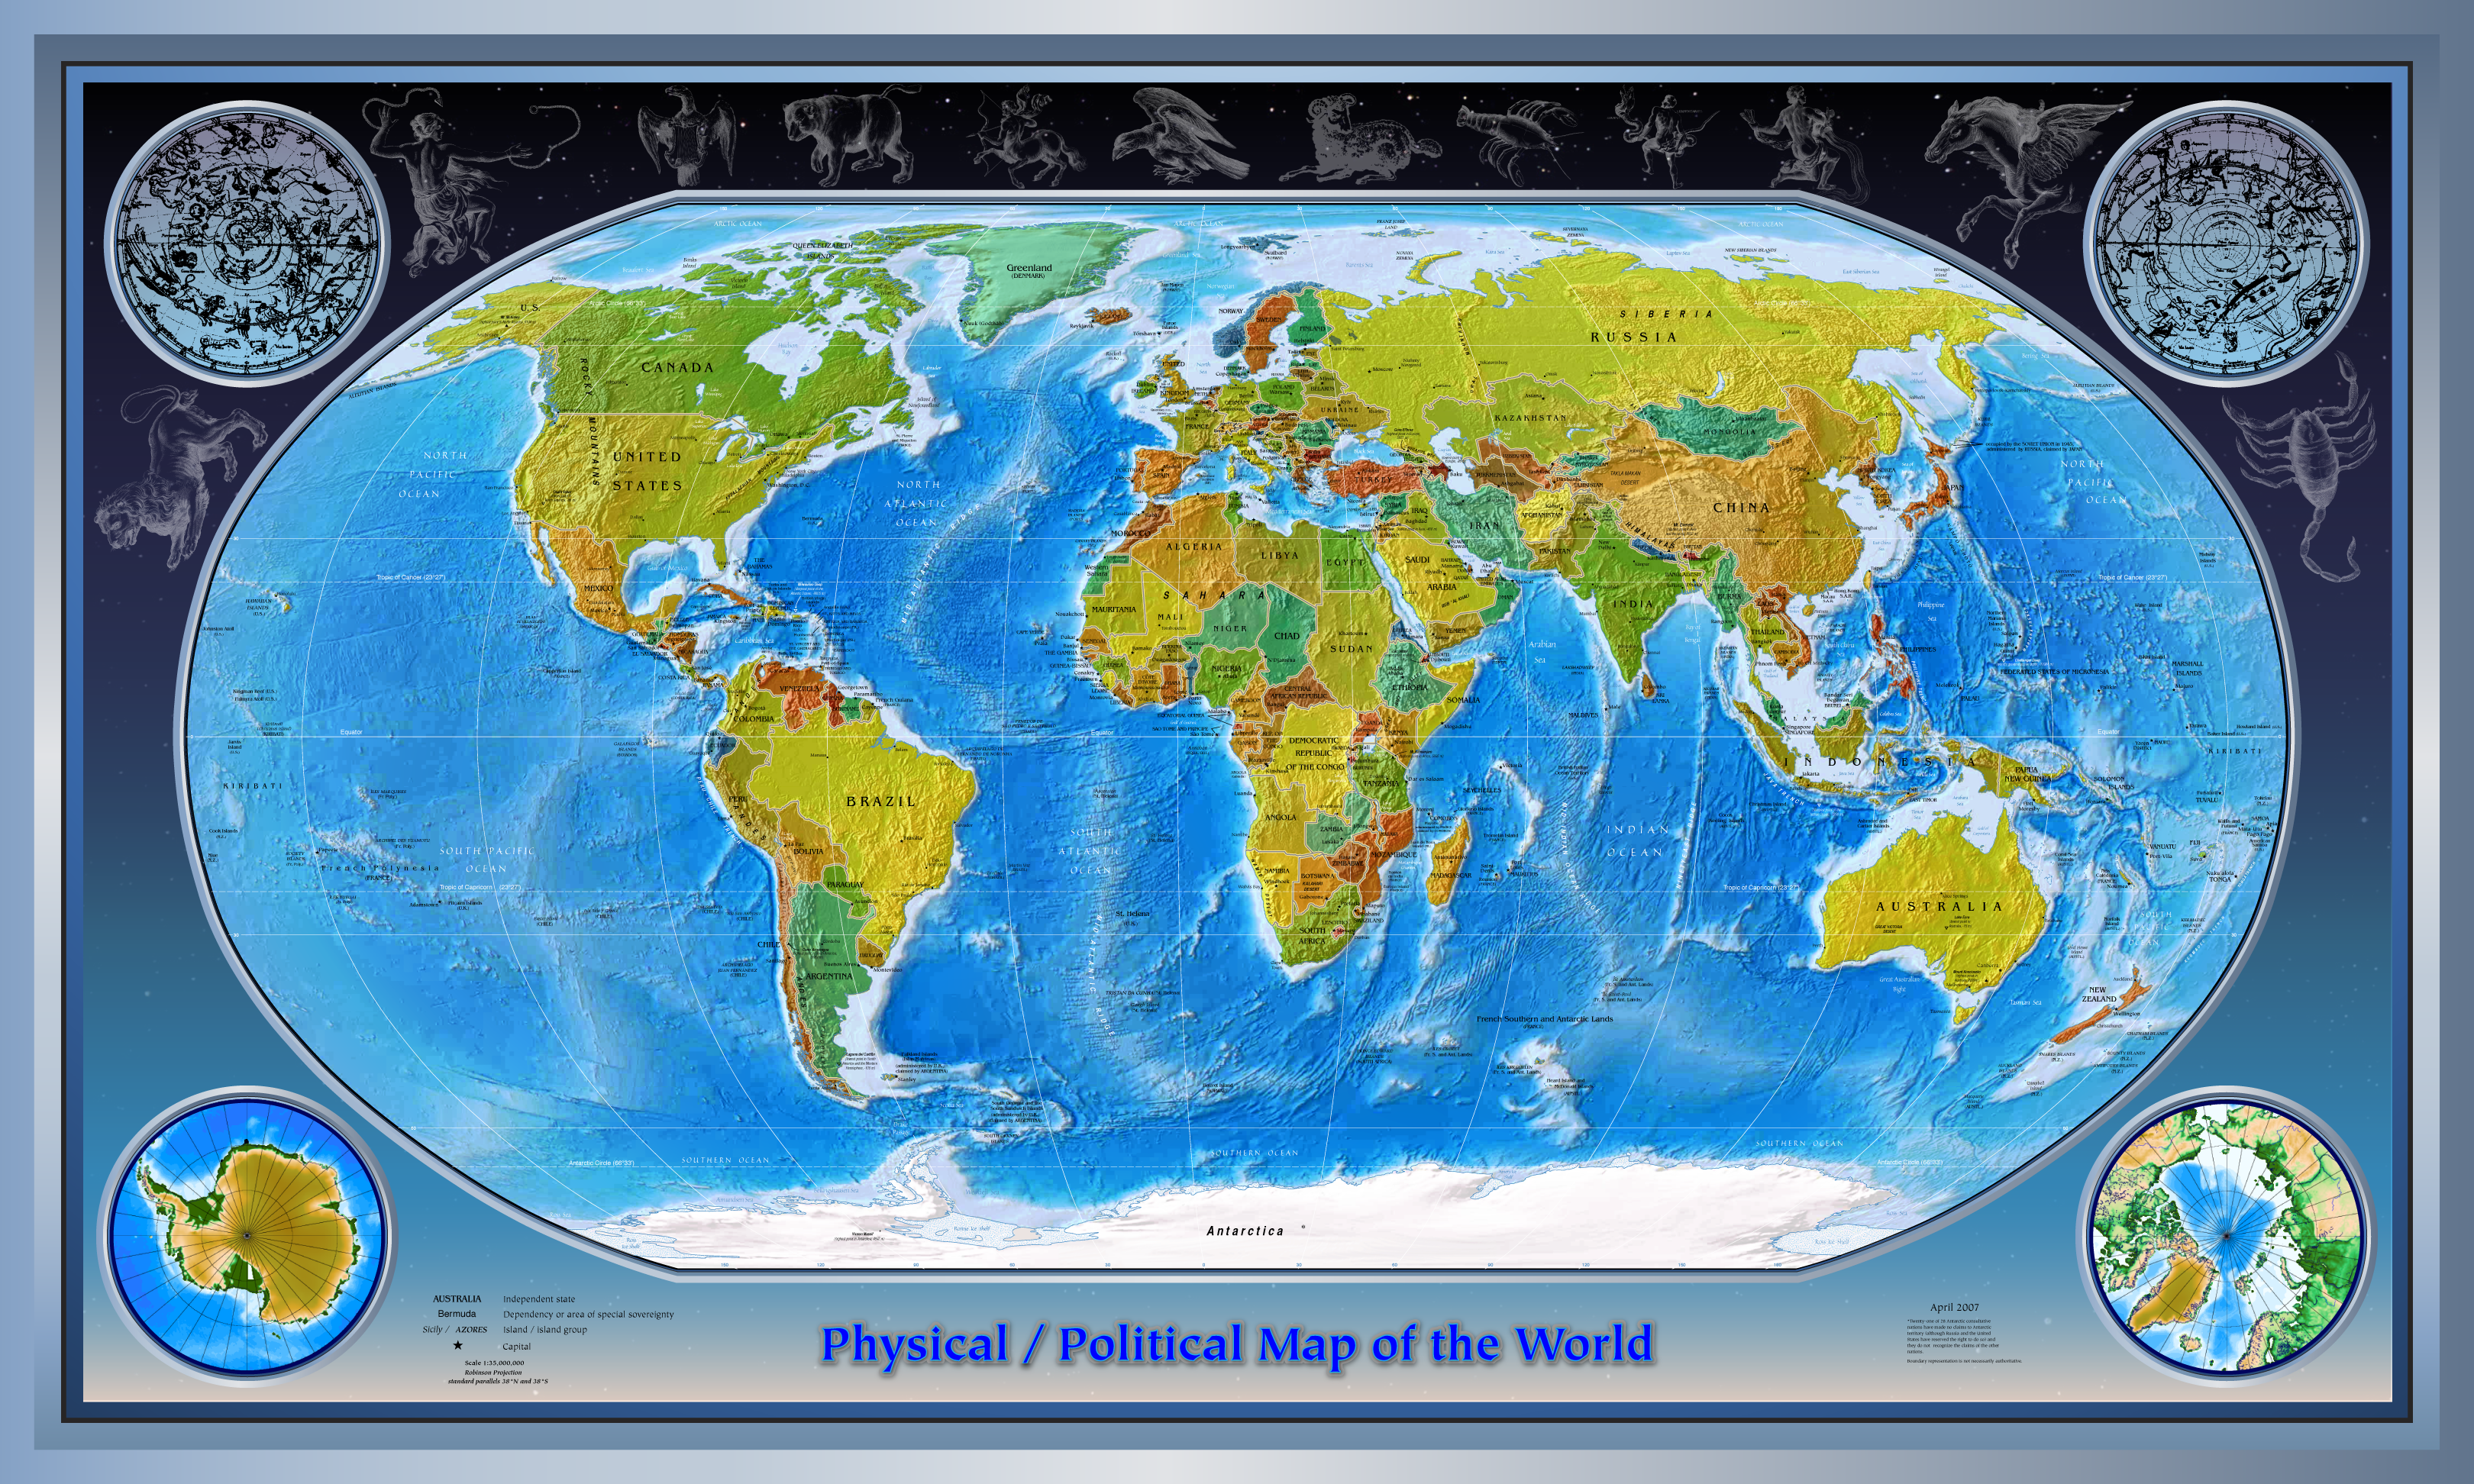 Filephysical political world mapg wikimedia commons filephysical political world mapg gumiabroncs Image collections